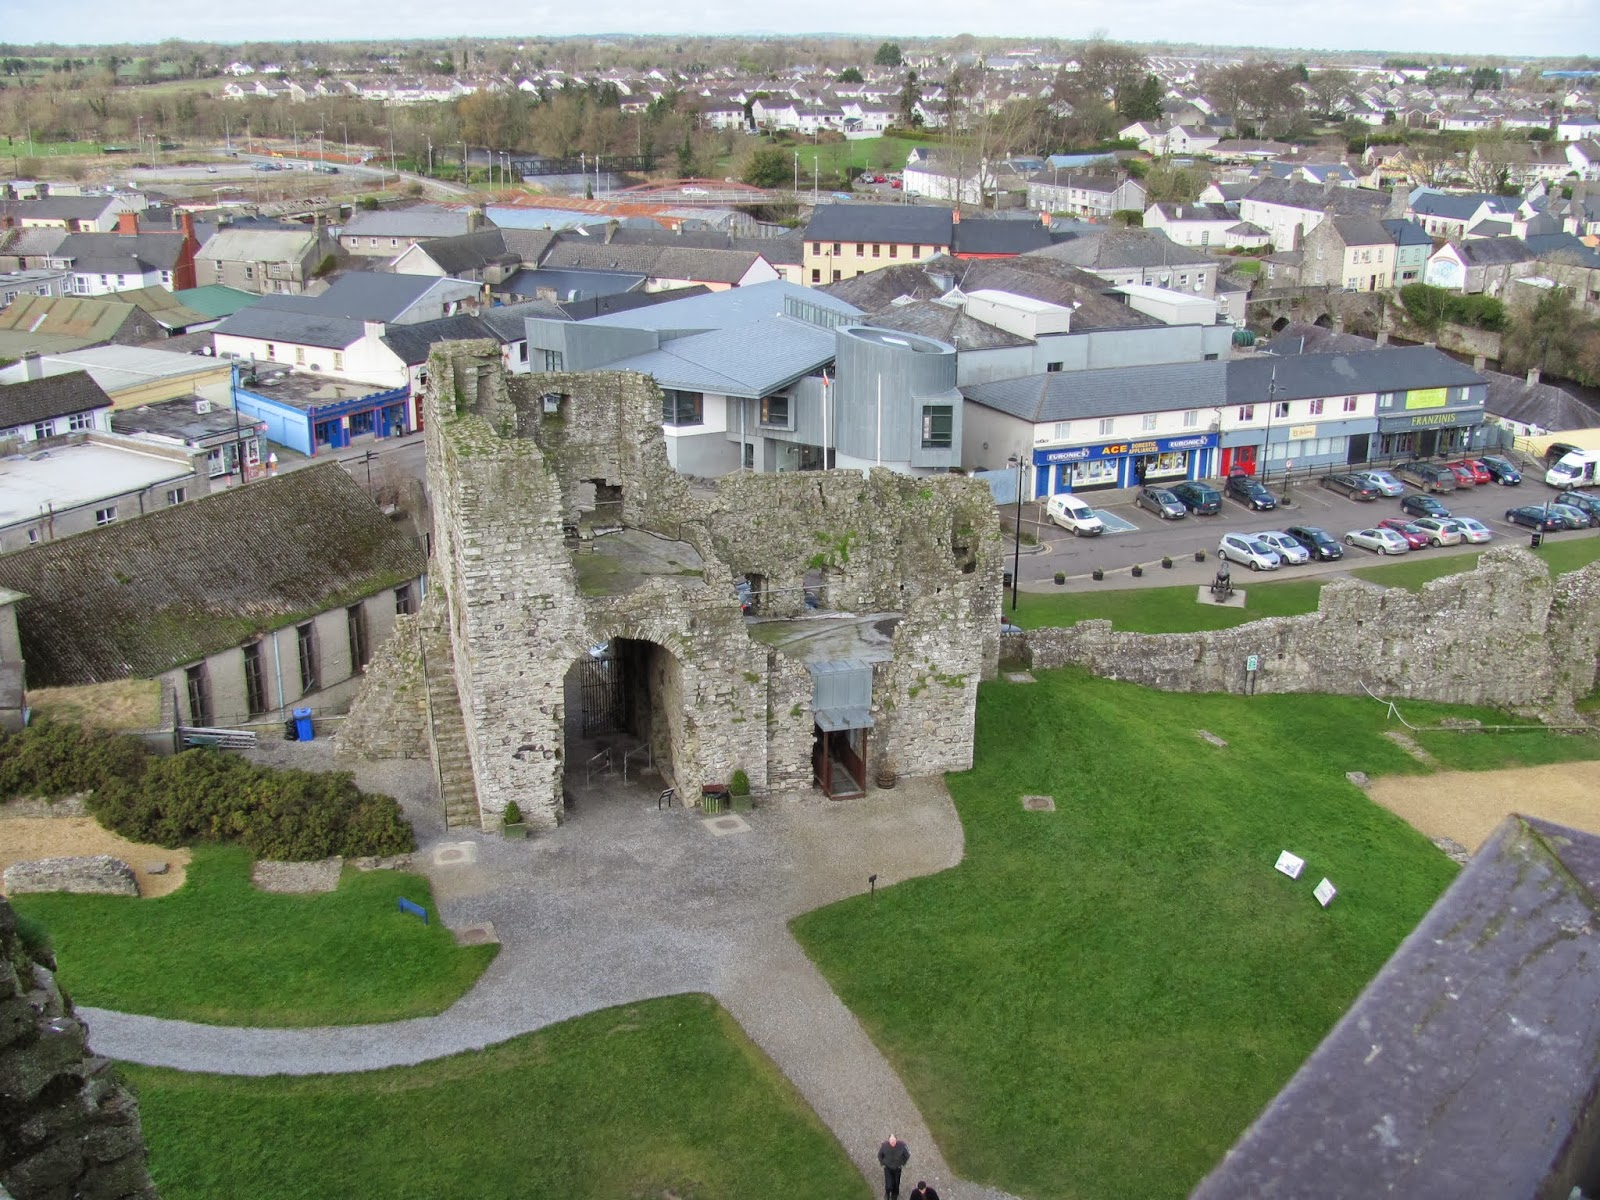 Main Castle Town Gate, Trim Castle, Trim, Ireland